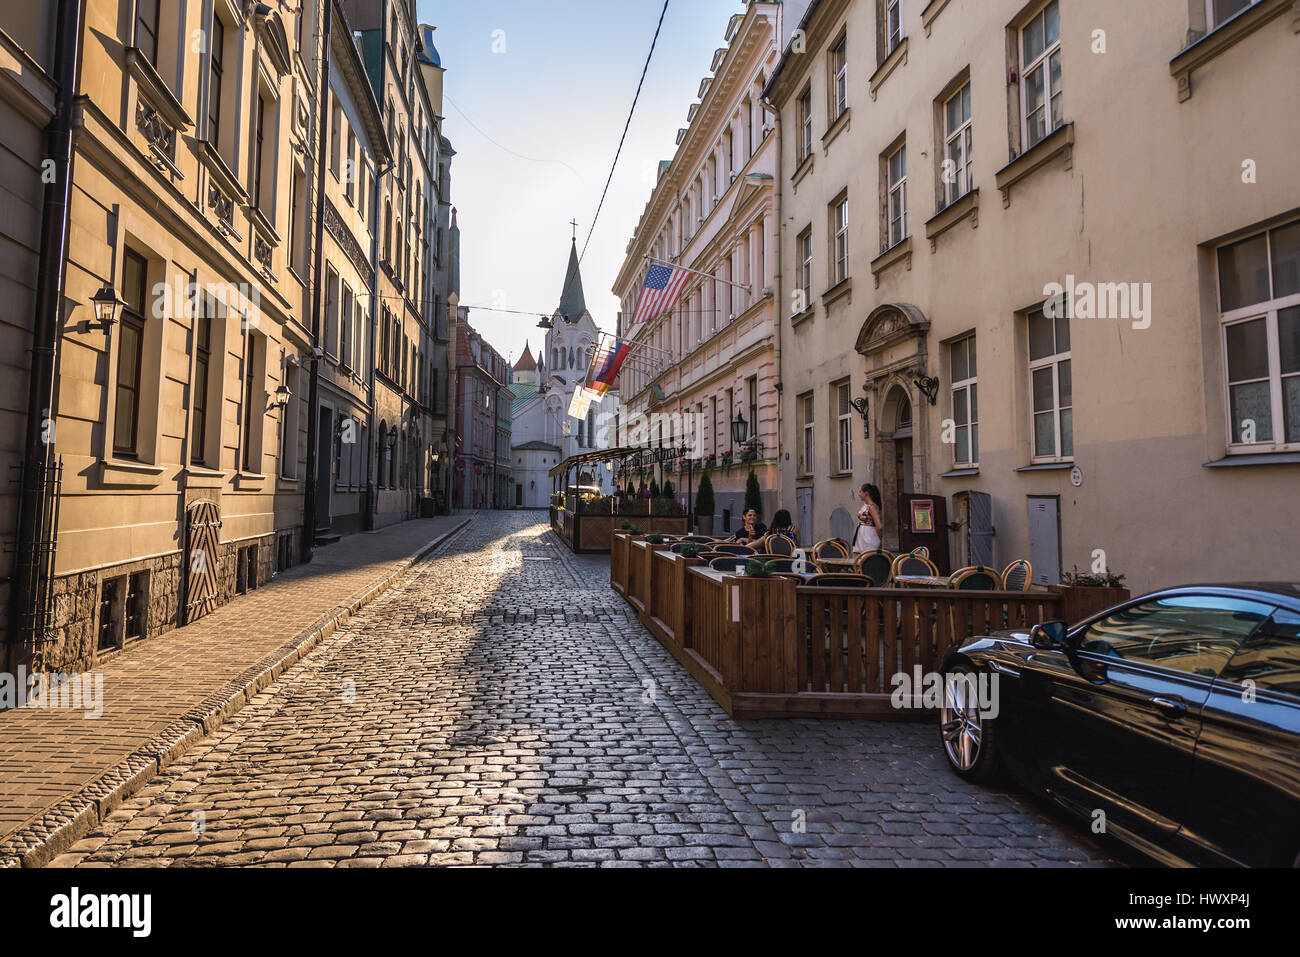 Pils iela (Pils Street) on the Old Town of Riga, capital city of Republic of Latvia. Our Lady of Sorrows Church - Stock Image